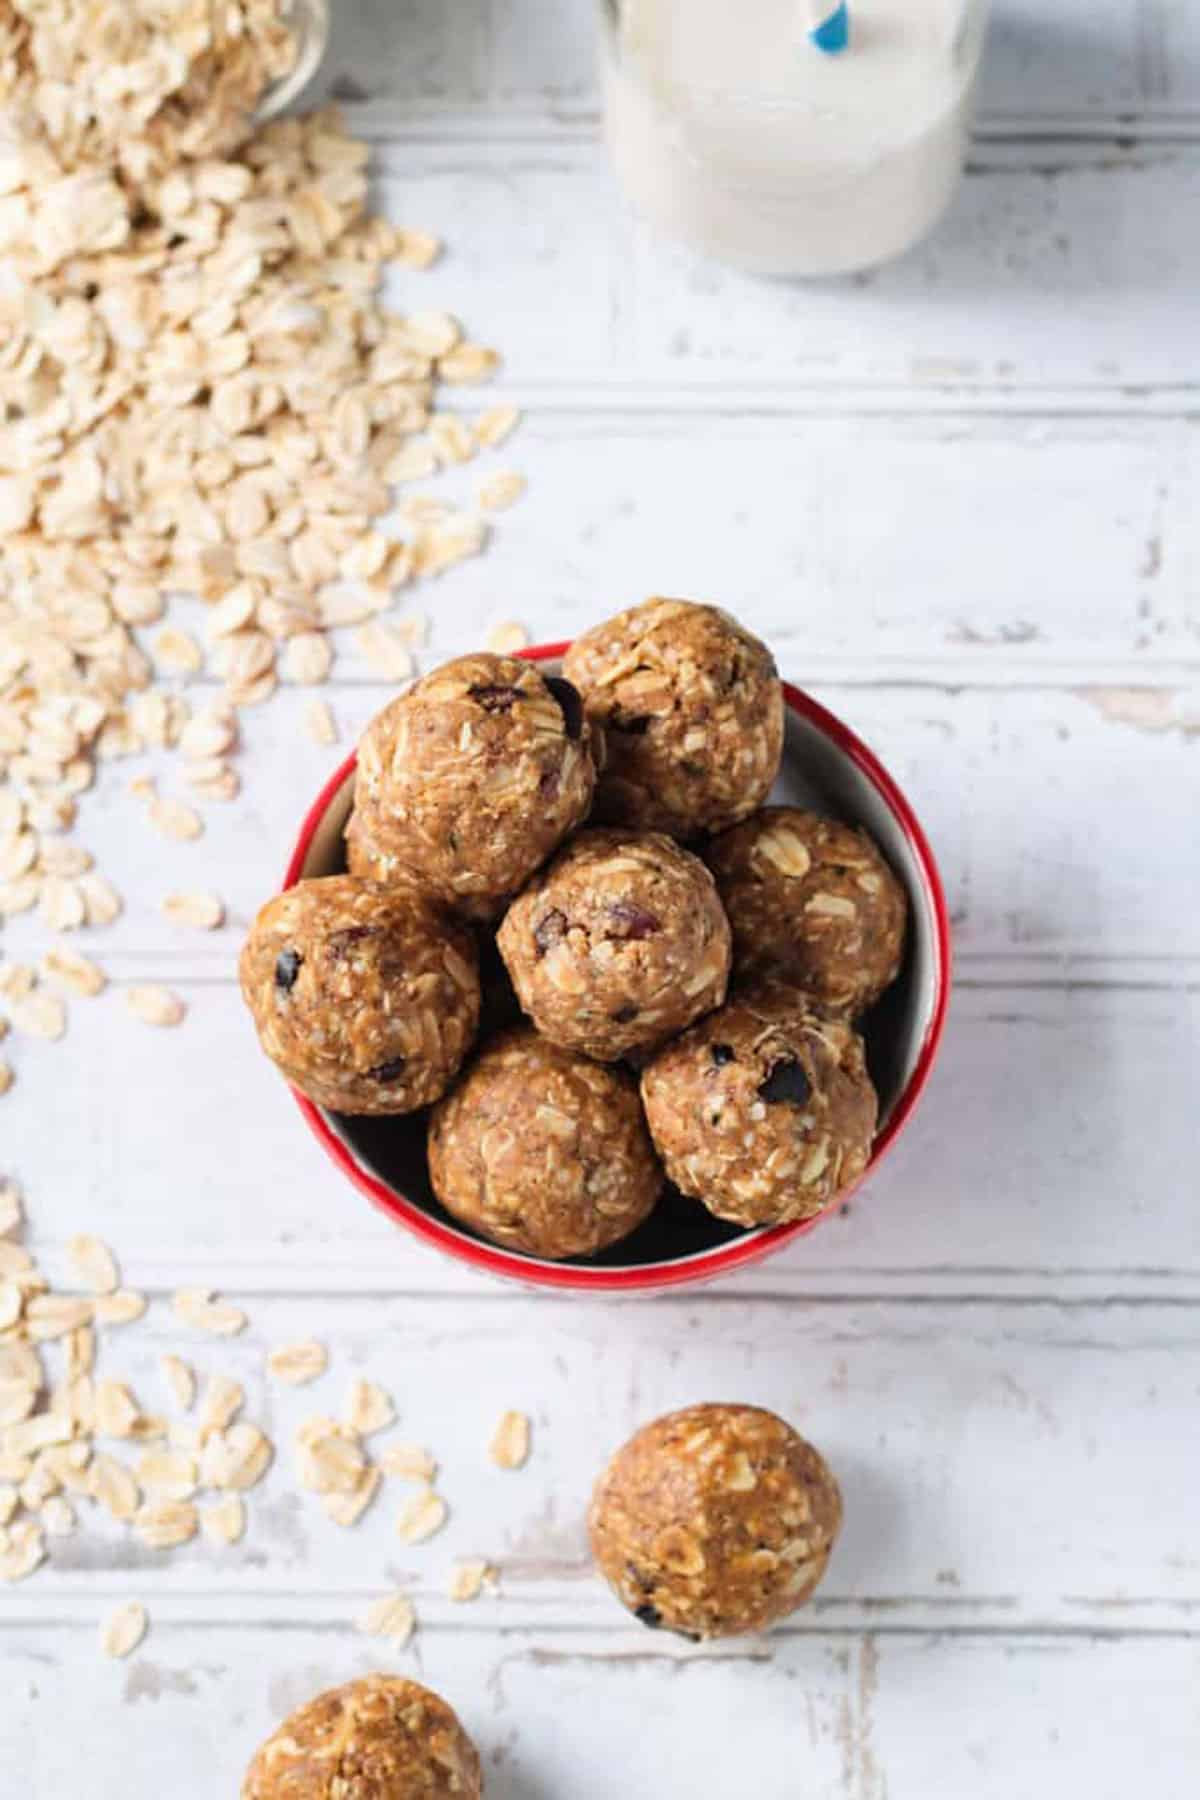 Overhead view of a bowl of oatmeal peanut butte balls. Raw oats scattered around the bowl.